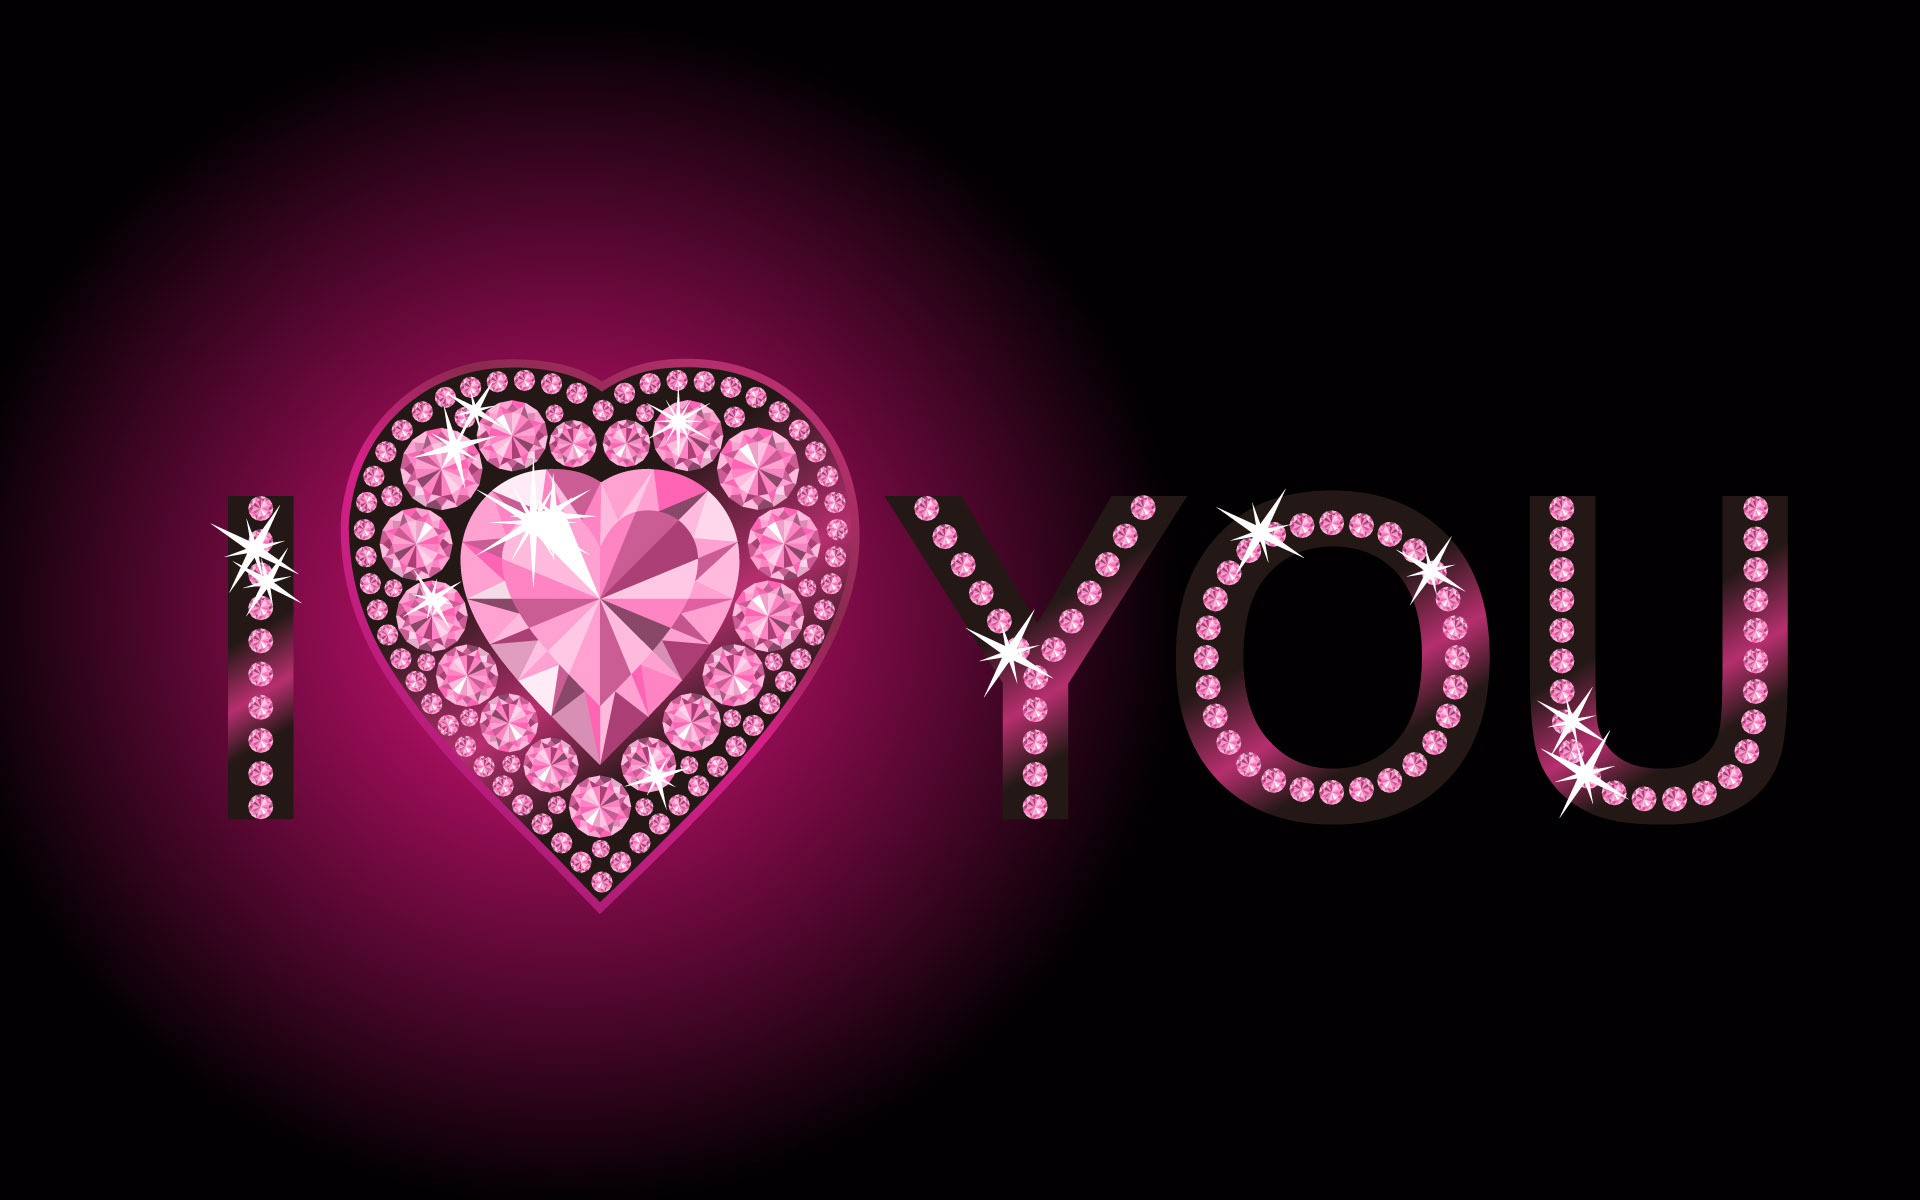 I Love You Wallpaper For Pc : I Love You Desktop Wallpaper - Wallpaper, High Definition ...